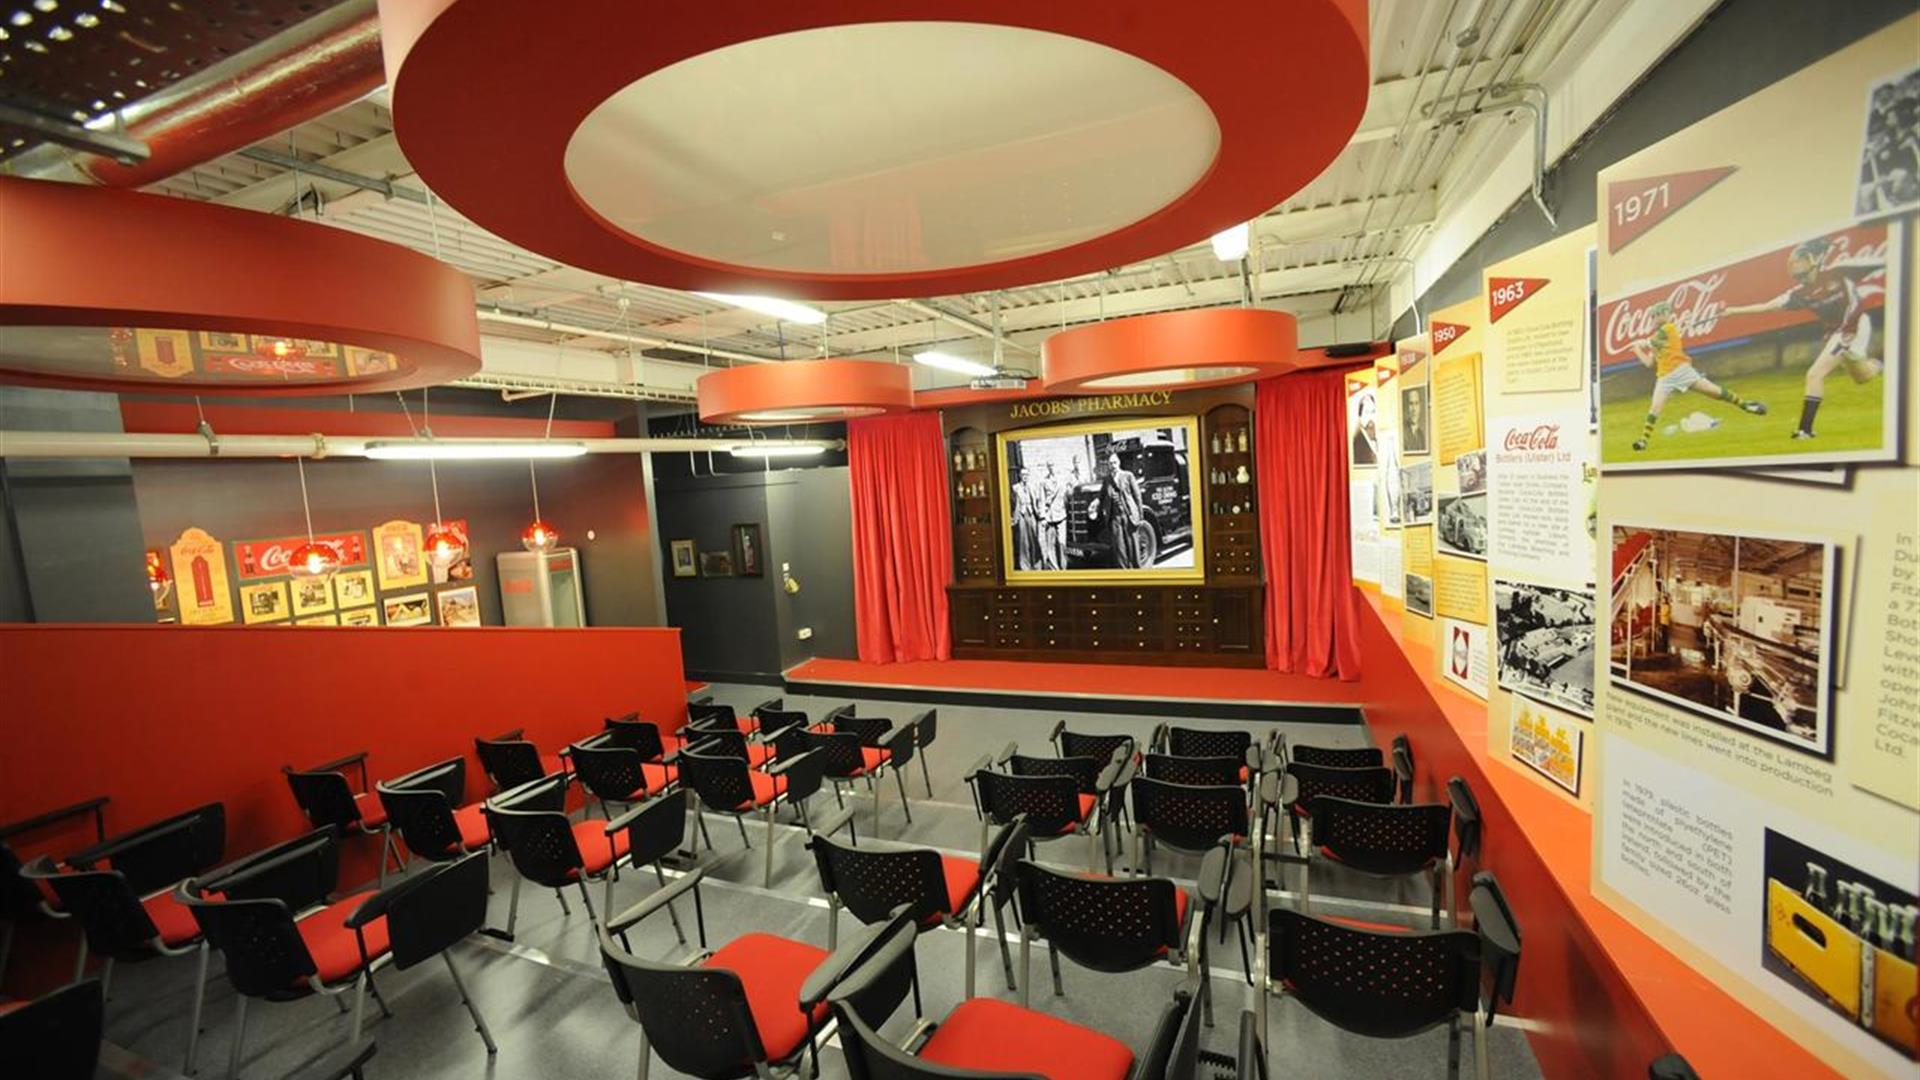 Image is of a meeting room with lots of chairs, images on the walls and large film screen on a stage